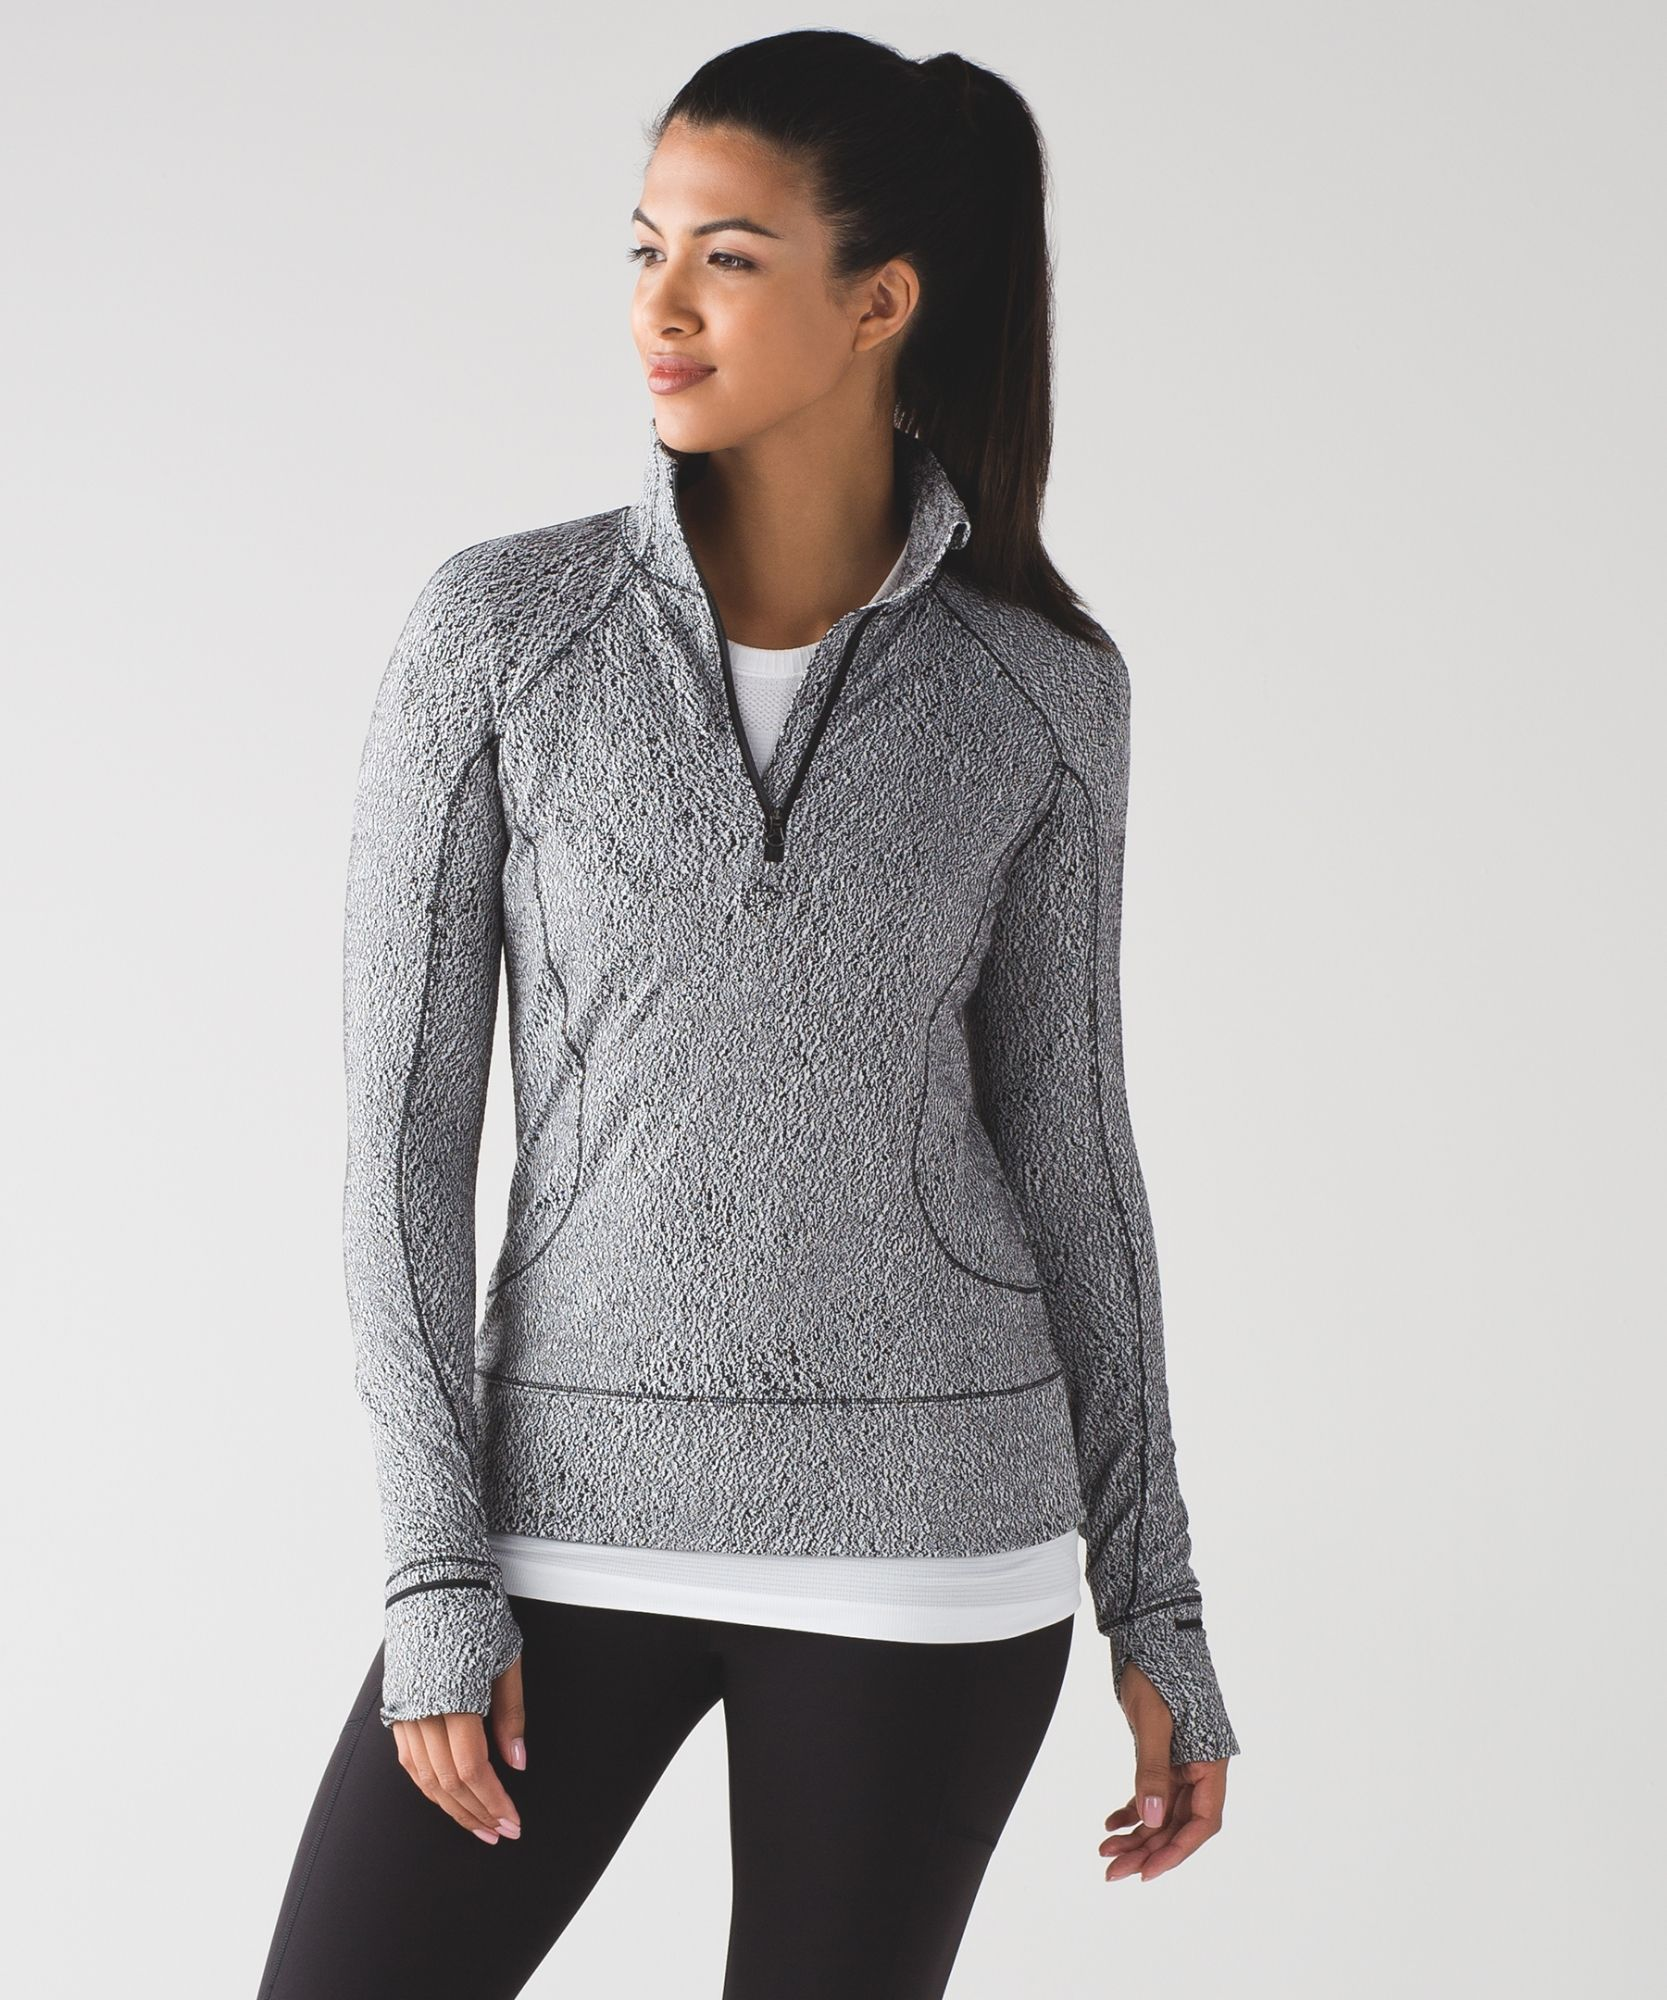 6218066e3c57bf Women's Long Sleeve Running Top - Rush Hour 1/2 Zip - lululemon ...